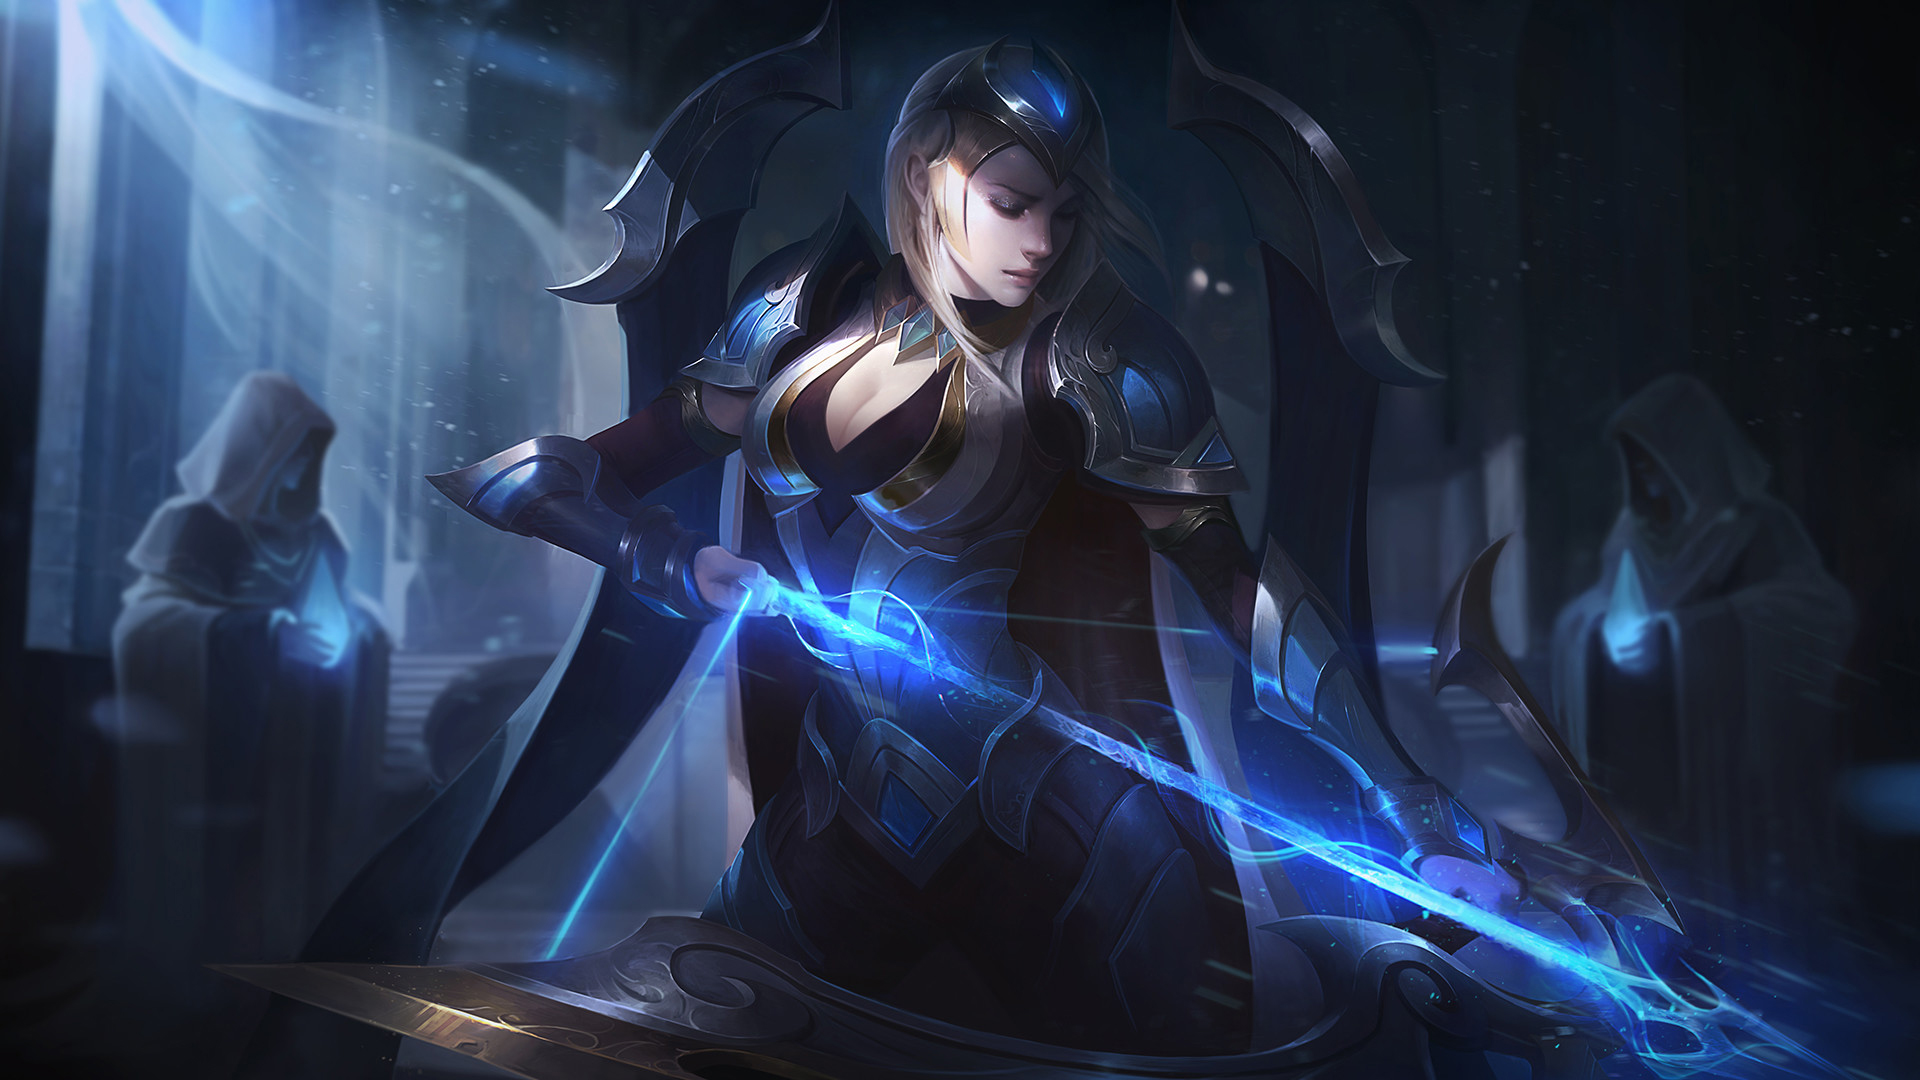 Championship Ashe League of Legends719405864 - Championship Ashe League of Legends - Mercy, Legends, League, Championship, Ashe